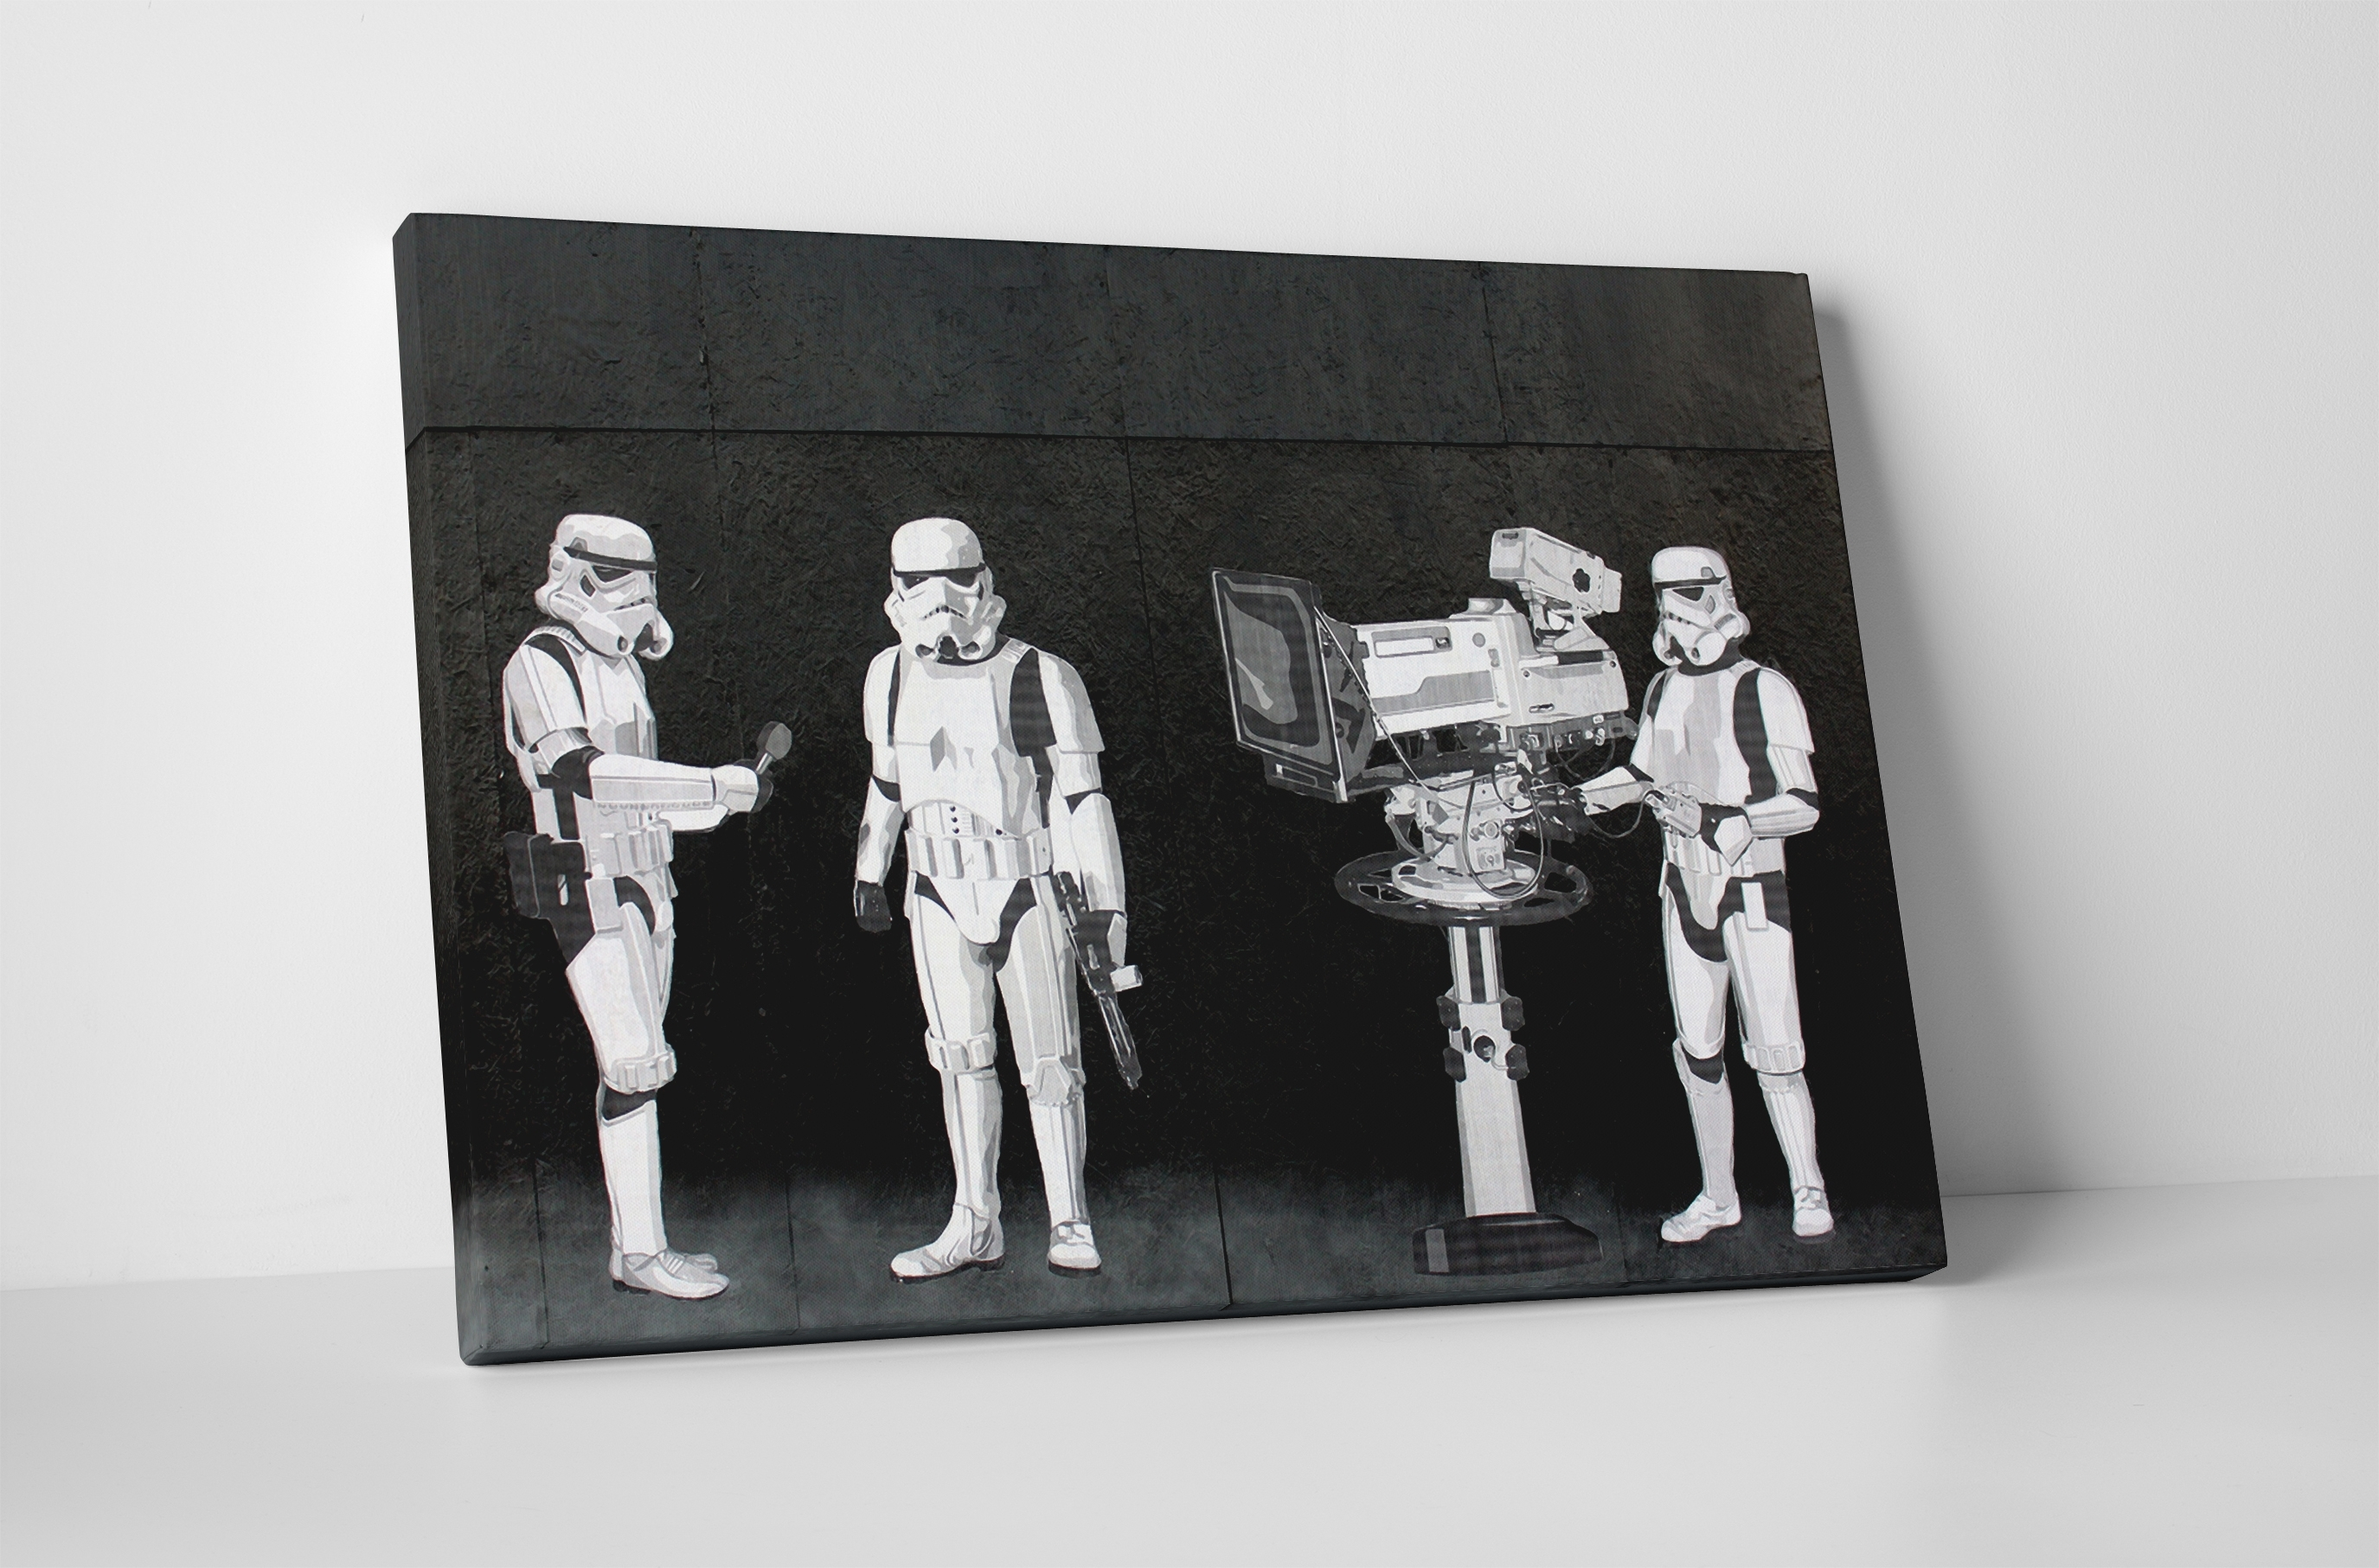 Banksy Stormtroopers Filming Oscars Canvas Wall Art Regarding Most Up To Date Movies Canvas Wall Art (View 10 of 15)